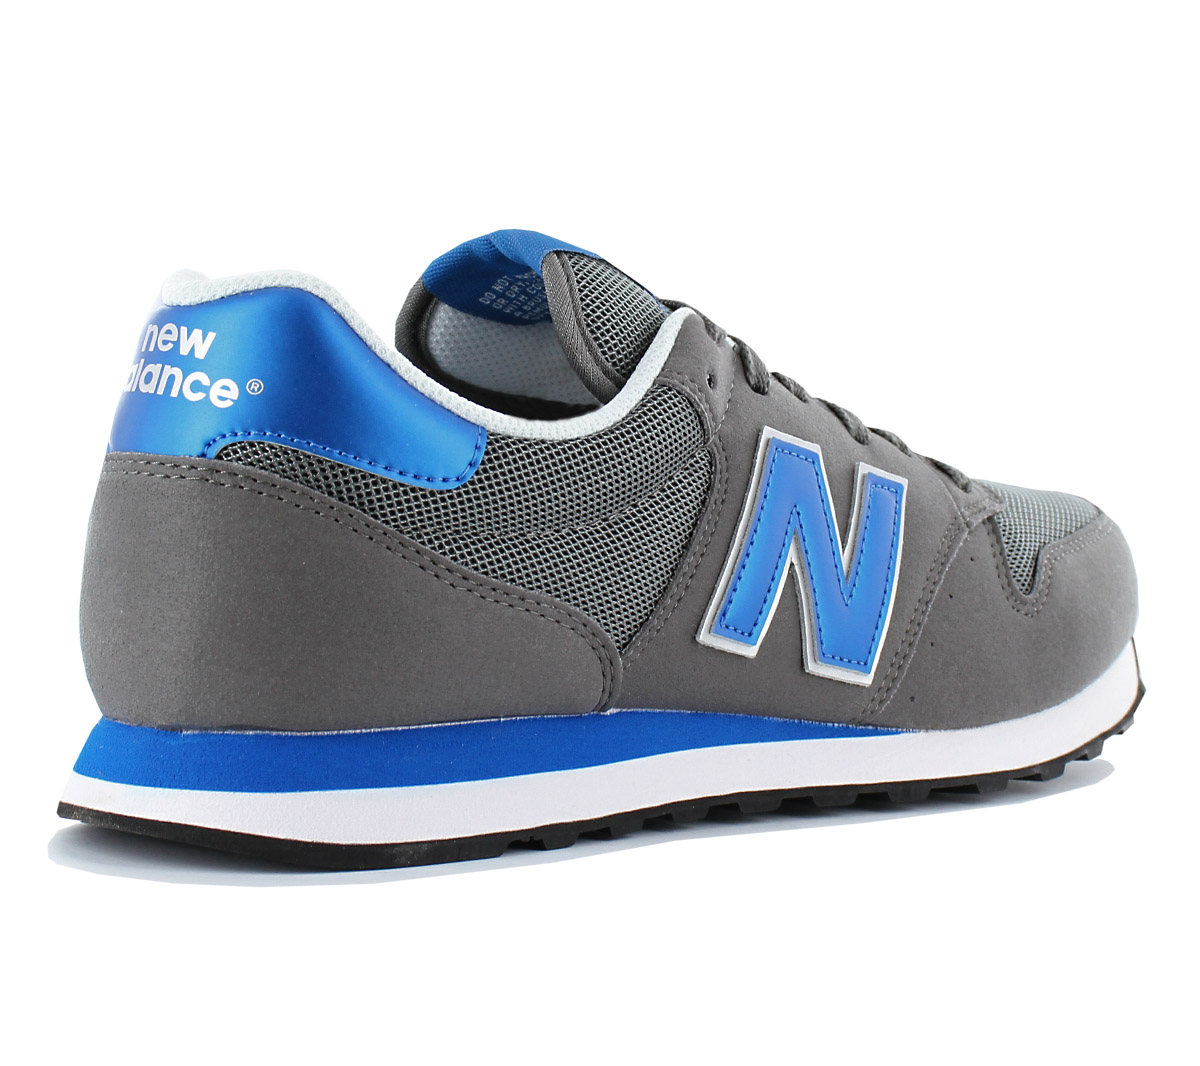 Details about New Balance Classics 500 Men's Sneakers Shoes Grey Gm500ksr Gm500 Trainers